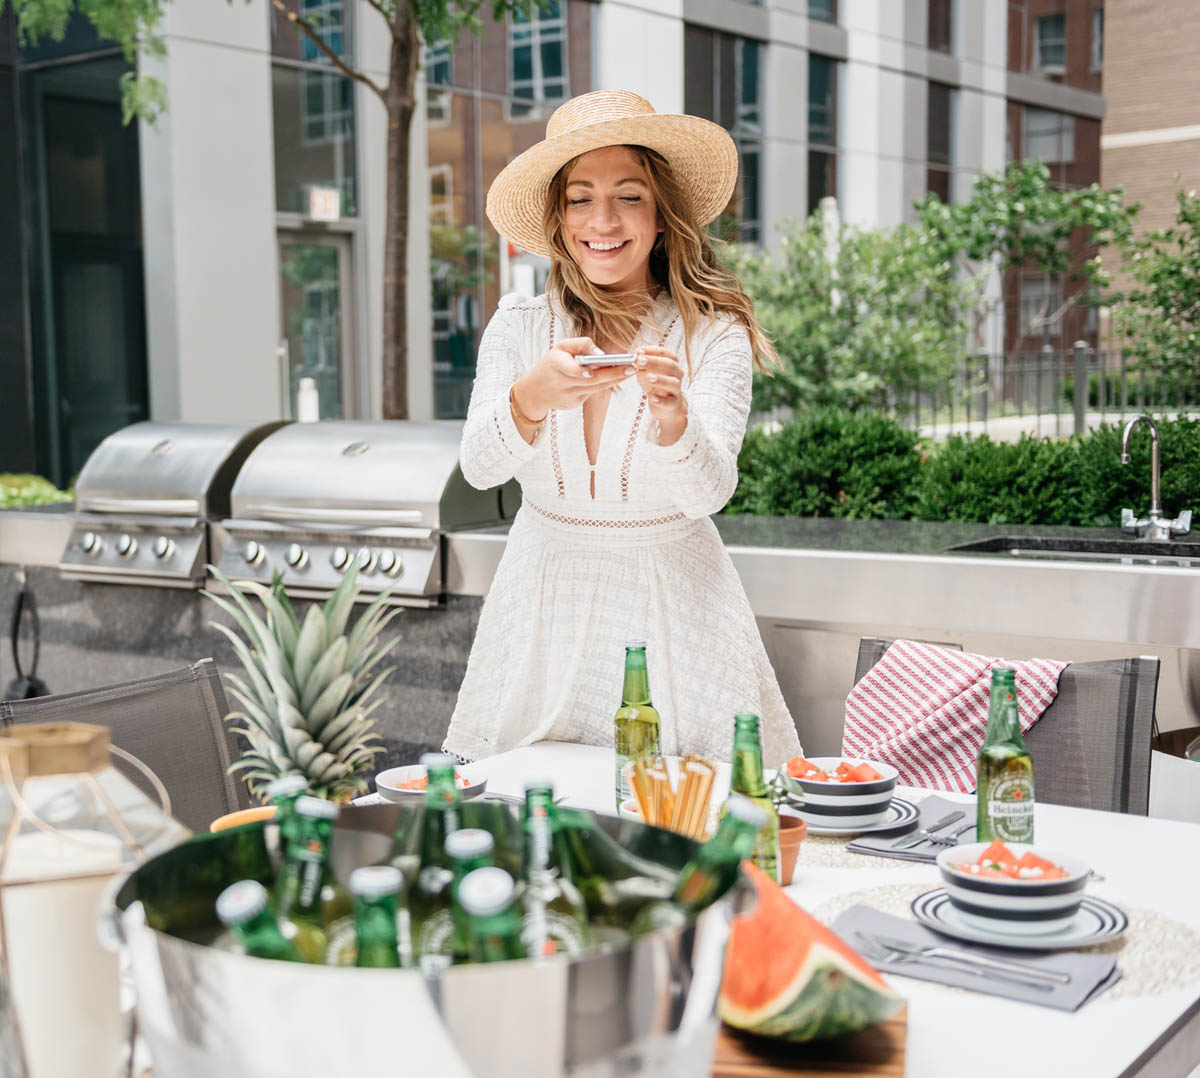 @halliekwilson's cover photo for 'How to Host a Healthy Outdoor Dinner Party'